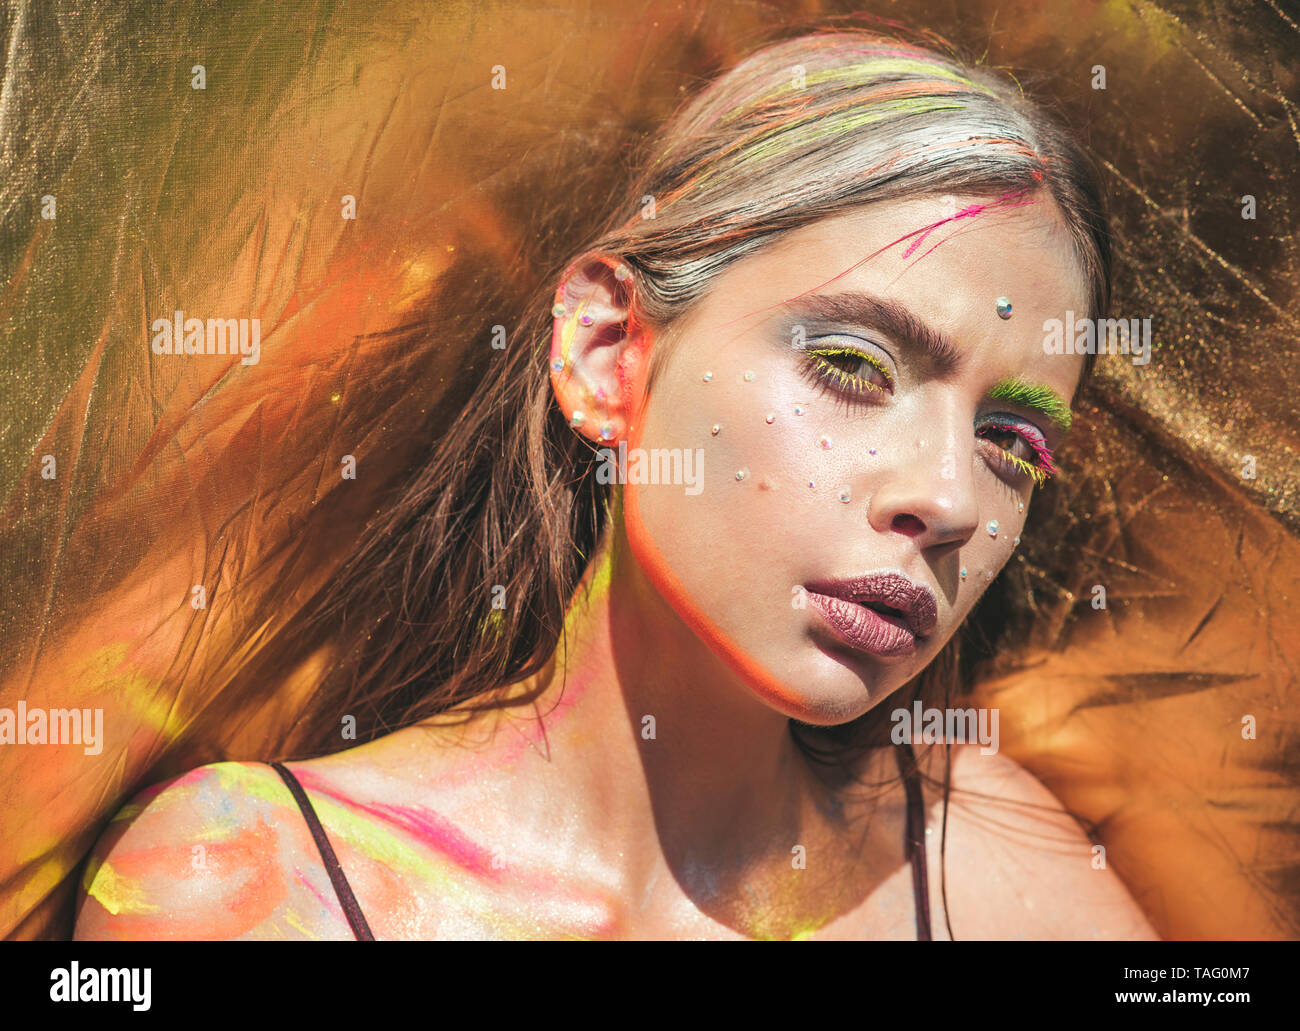 Holi Indian Culture Indian Woman With Colorful Neon Paint Makeup Face Visage Make Up Body Art Paint Party Colors Festival Girl Beauty Fashion Stock Photo Alamy